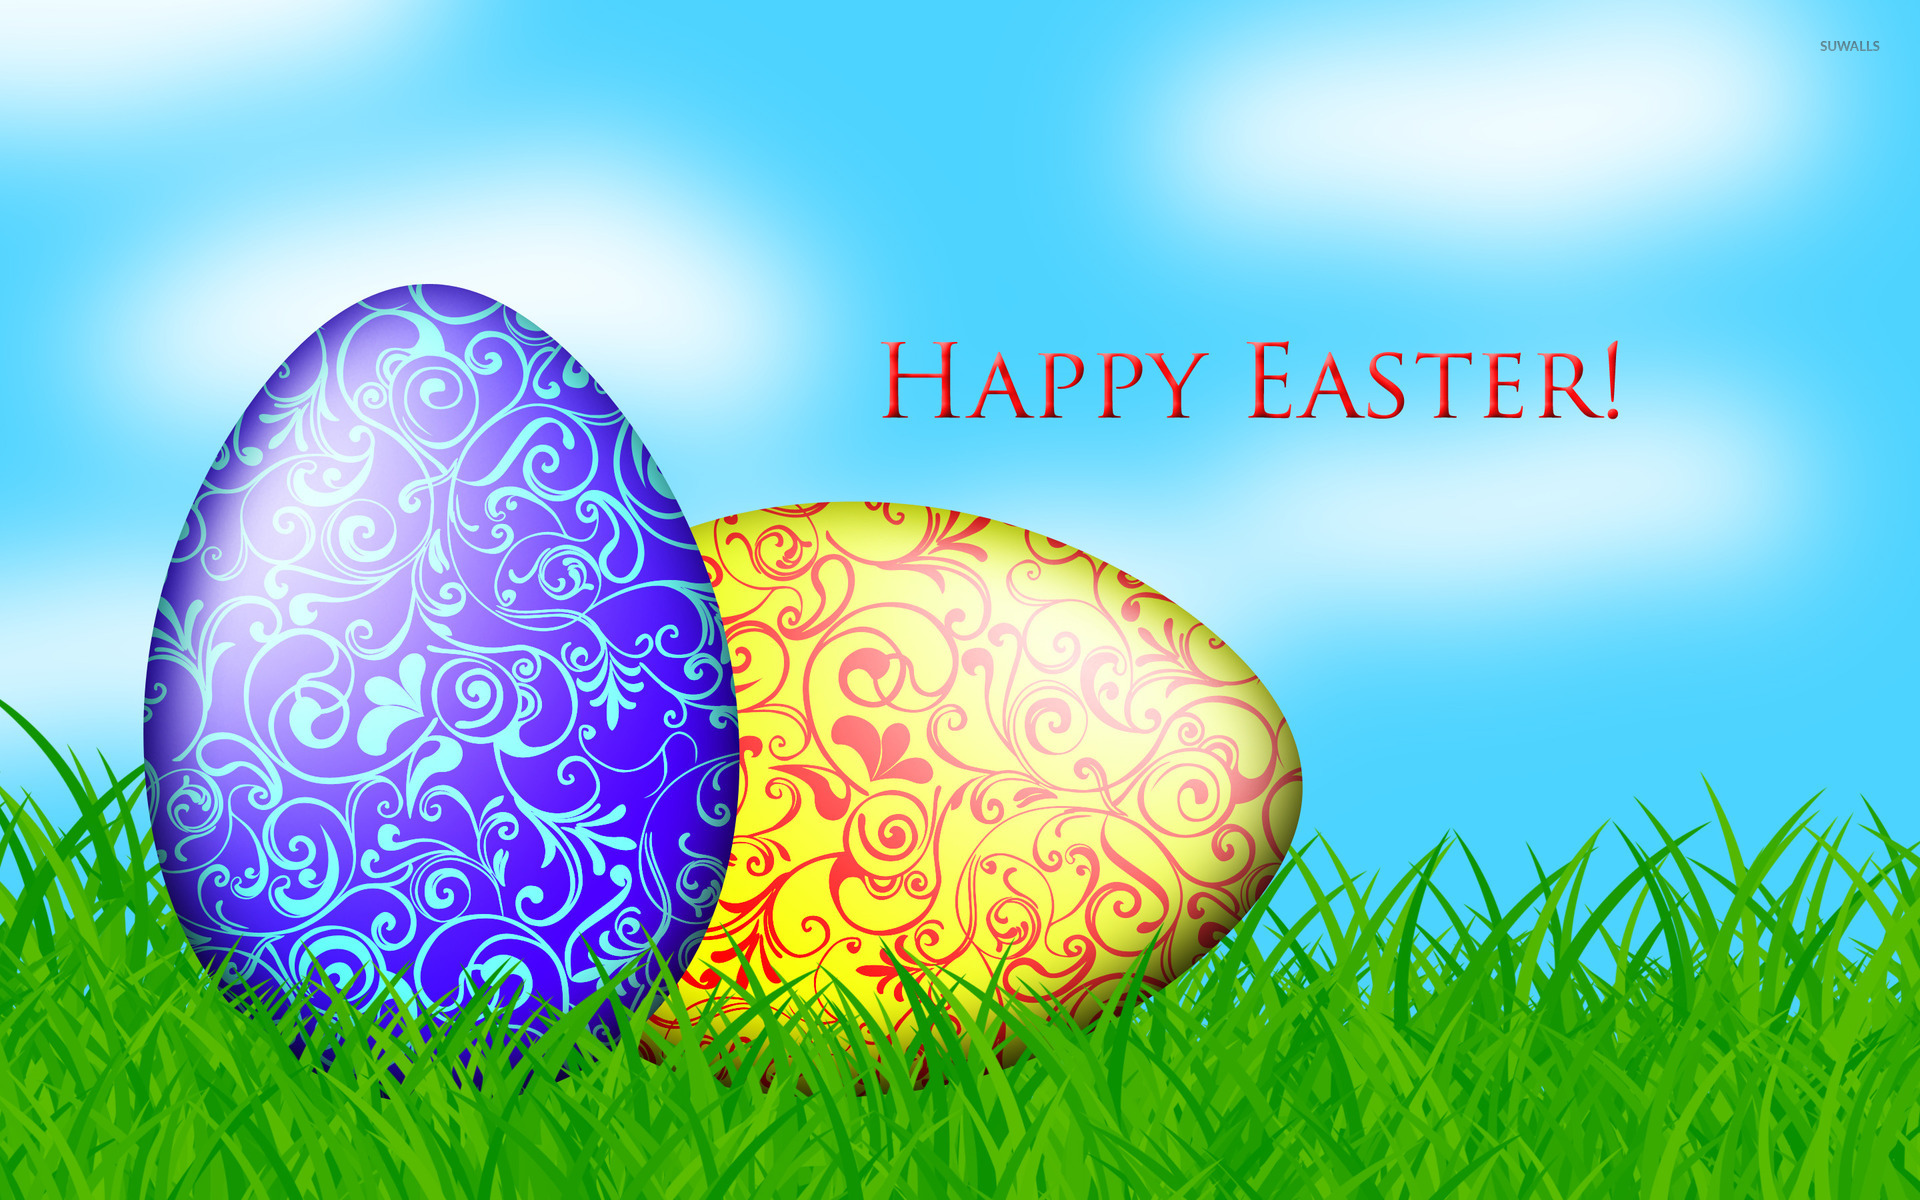 Happy Easter [4] wallpaper   Holiday wallpapers   29907 1920x1200